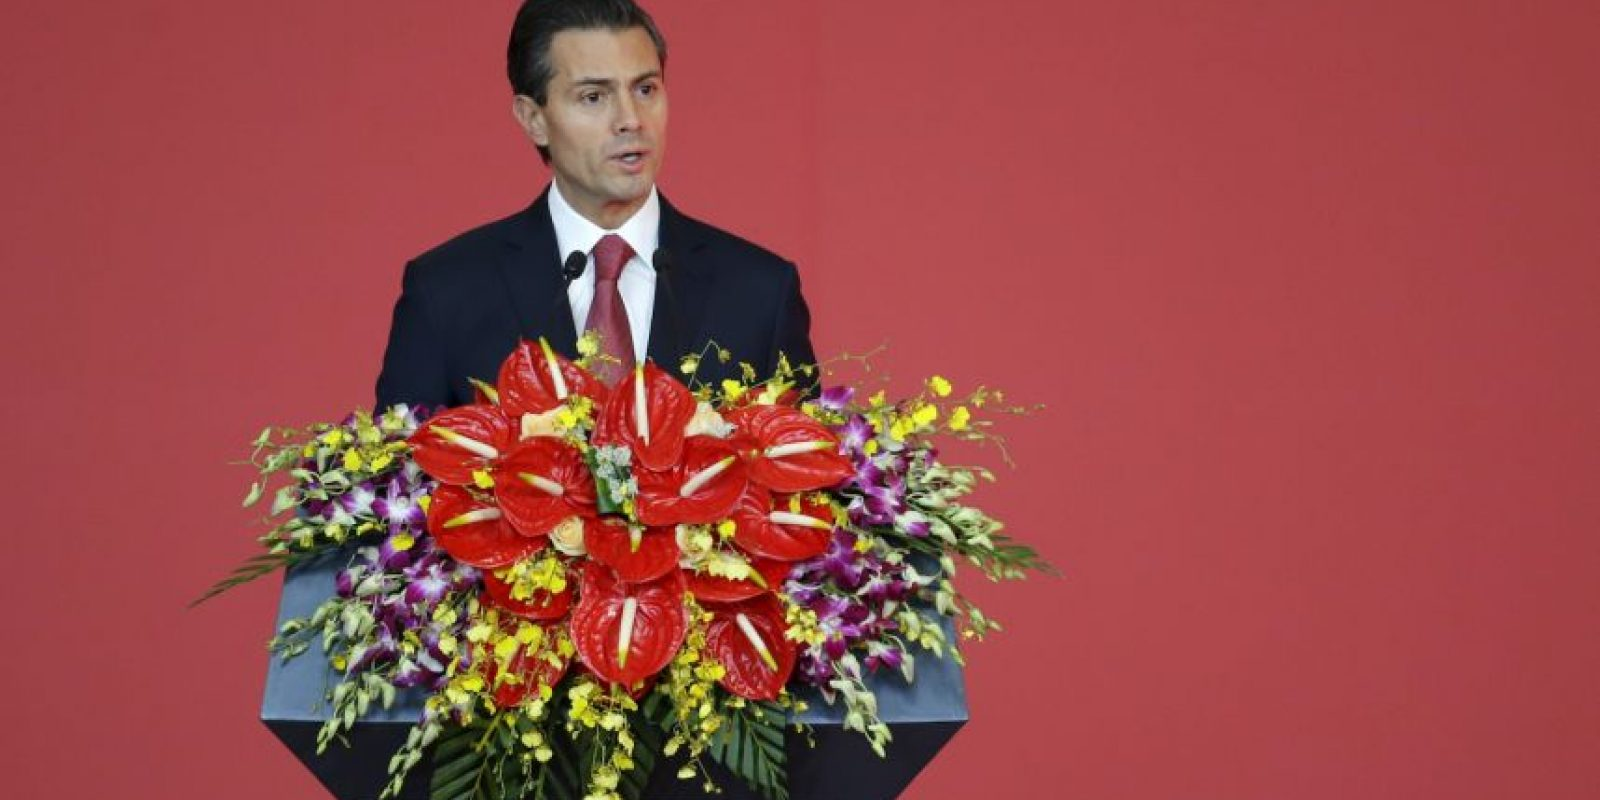 Enrique Peña Nieto: 2014 Foto: Getty Images